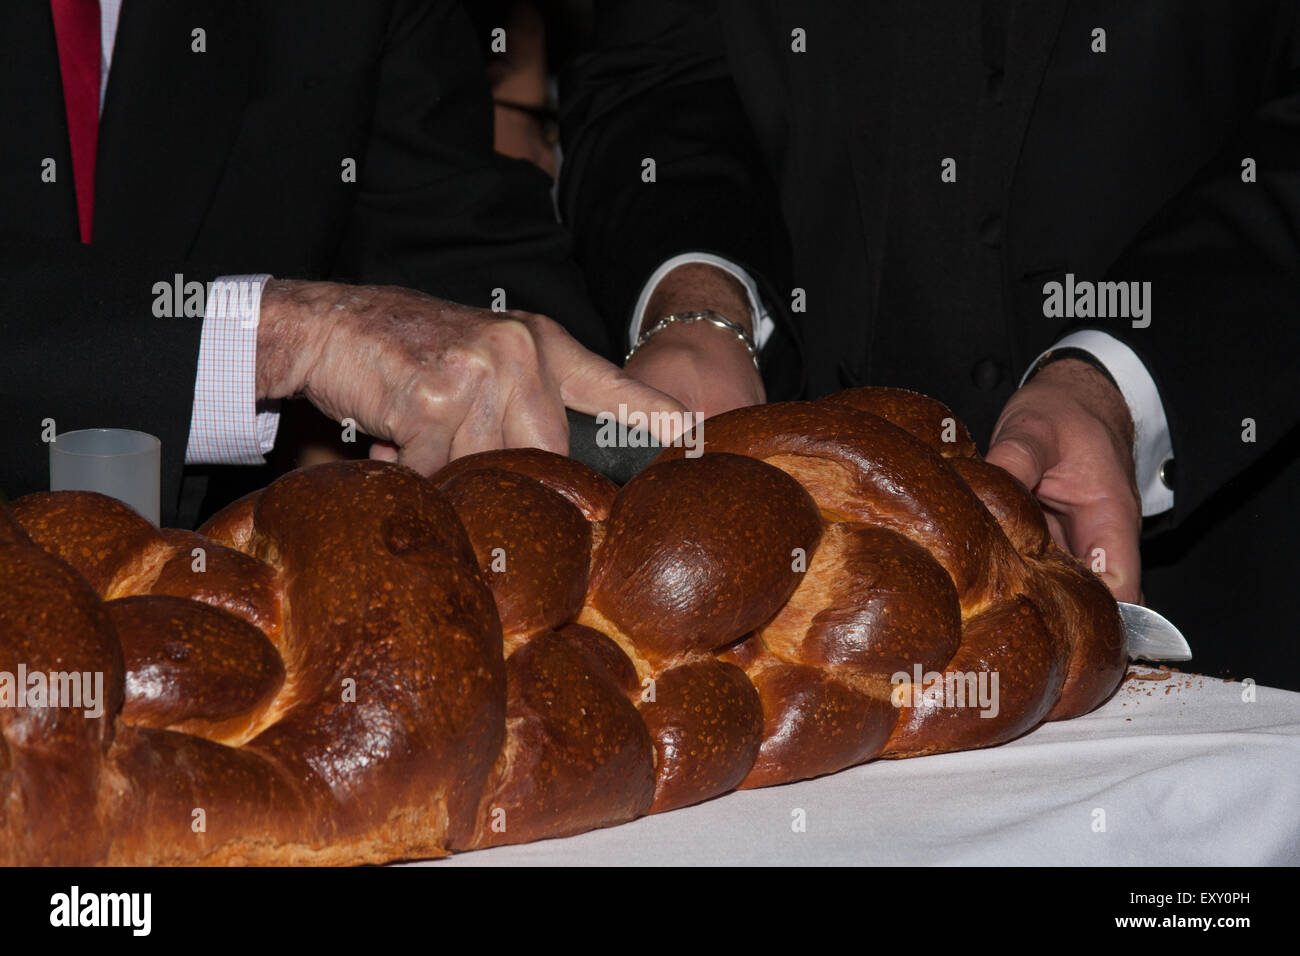 A grandfather cutting a challah bread at a bar mitzvah. - Stock Image